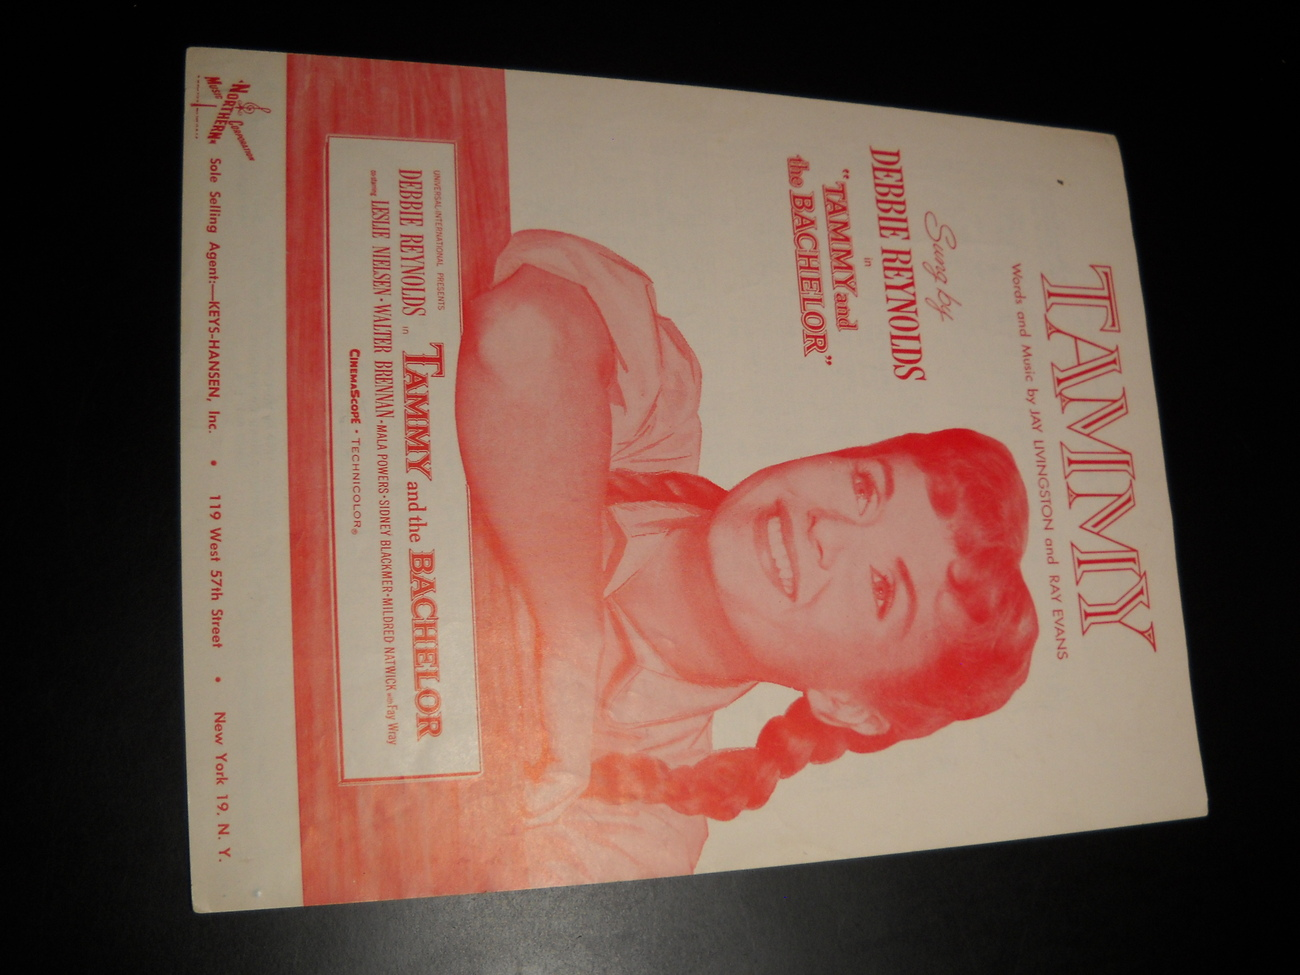 Sheet_music_tammy_tammy_and_the_bachelor_debbie_reynolds_1957_northern_01